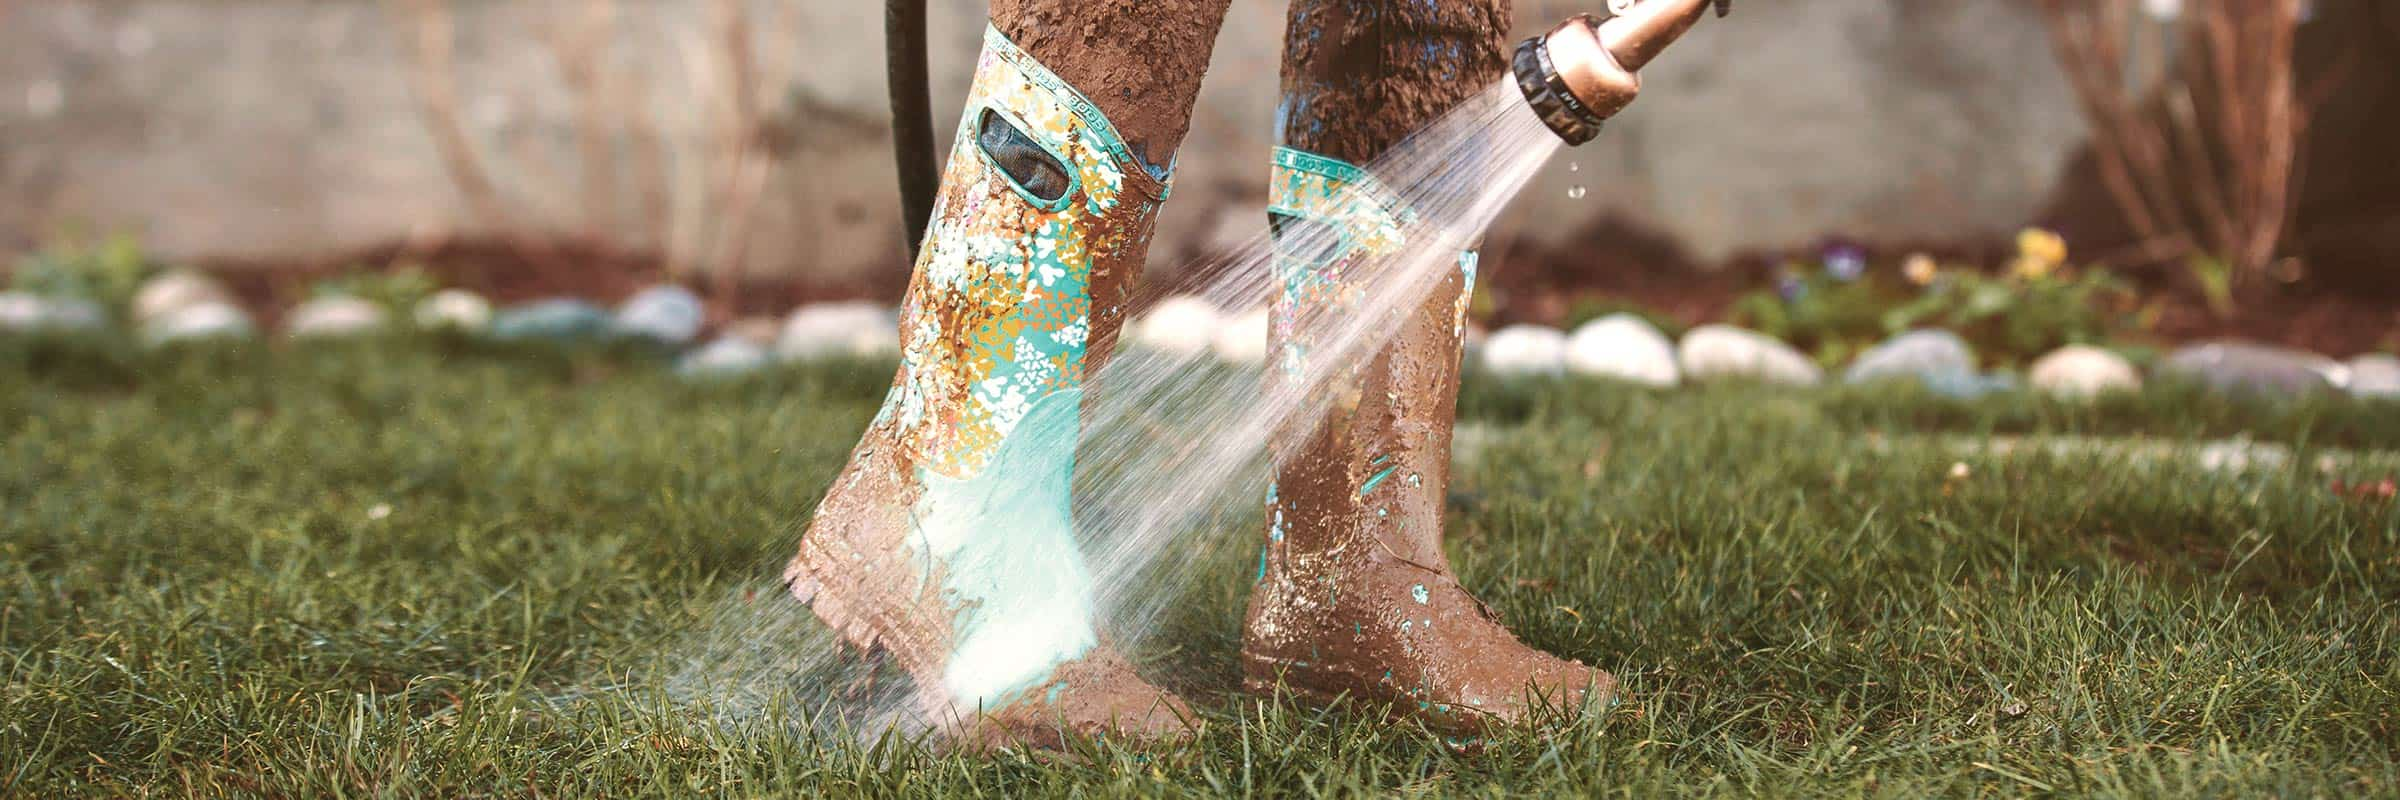 Choosing the right pair of rubber boots is now as important